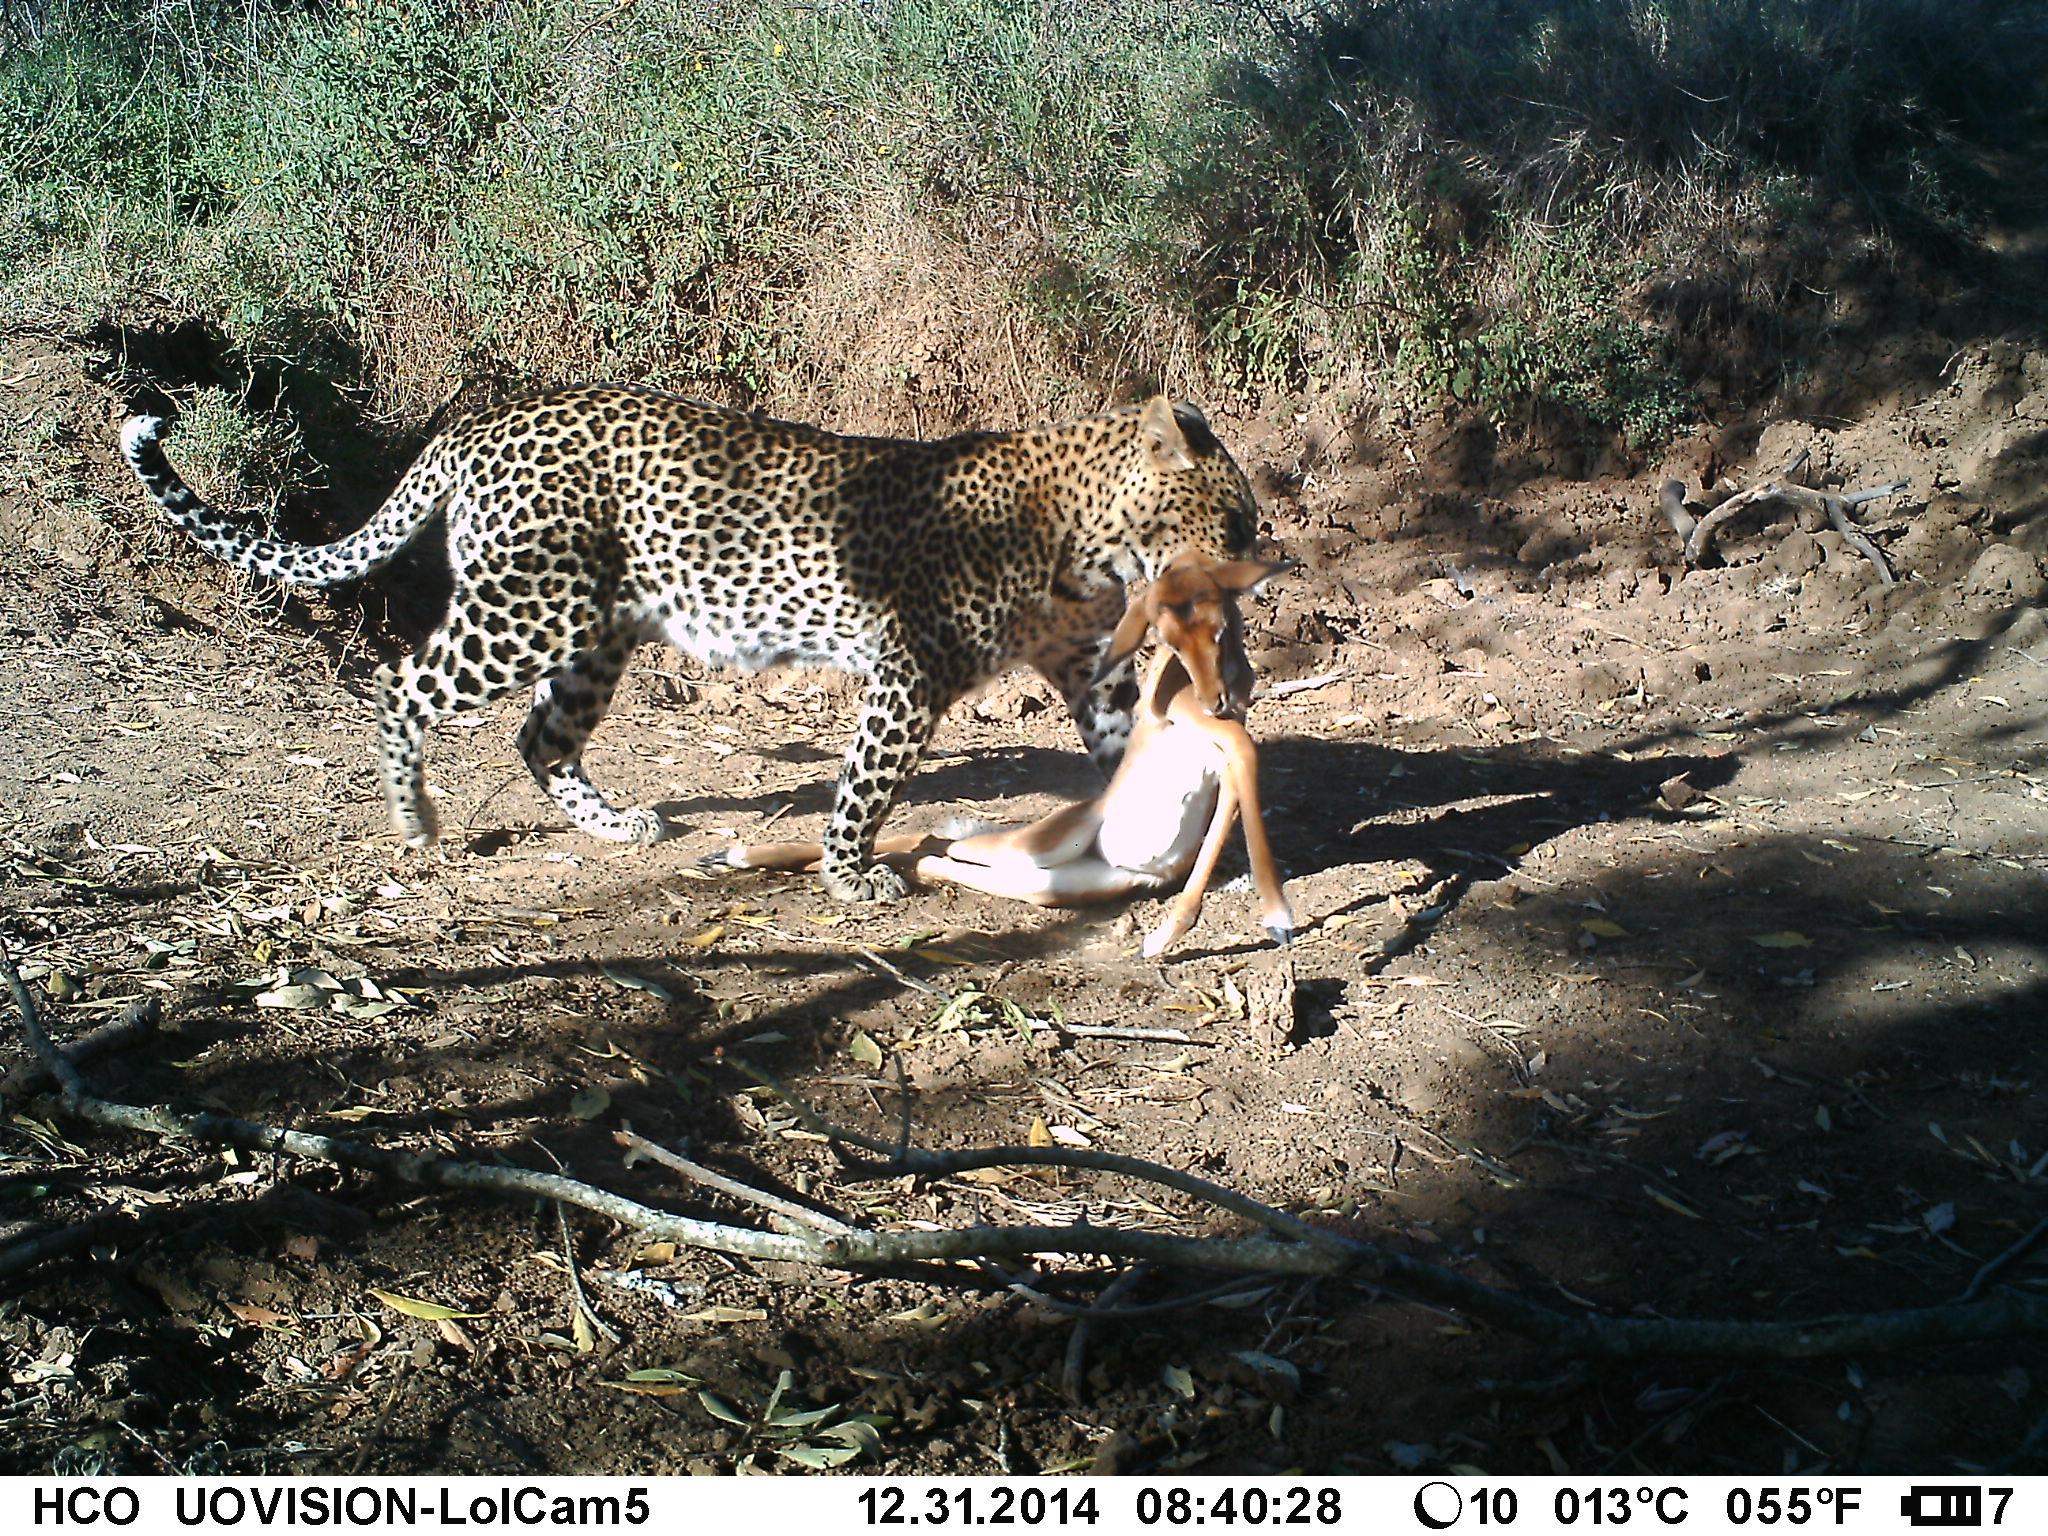 Leopard (Panthera pardus) with impala (Aepyceros melampus) prey. ZSL/EDGE/LHRP InstantWild camera trap image.